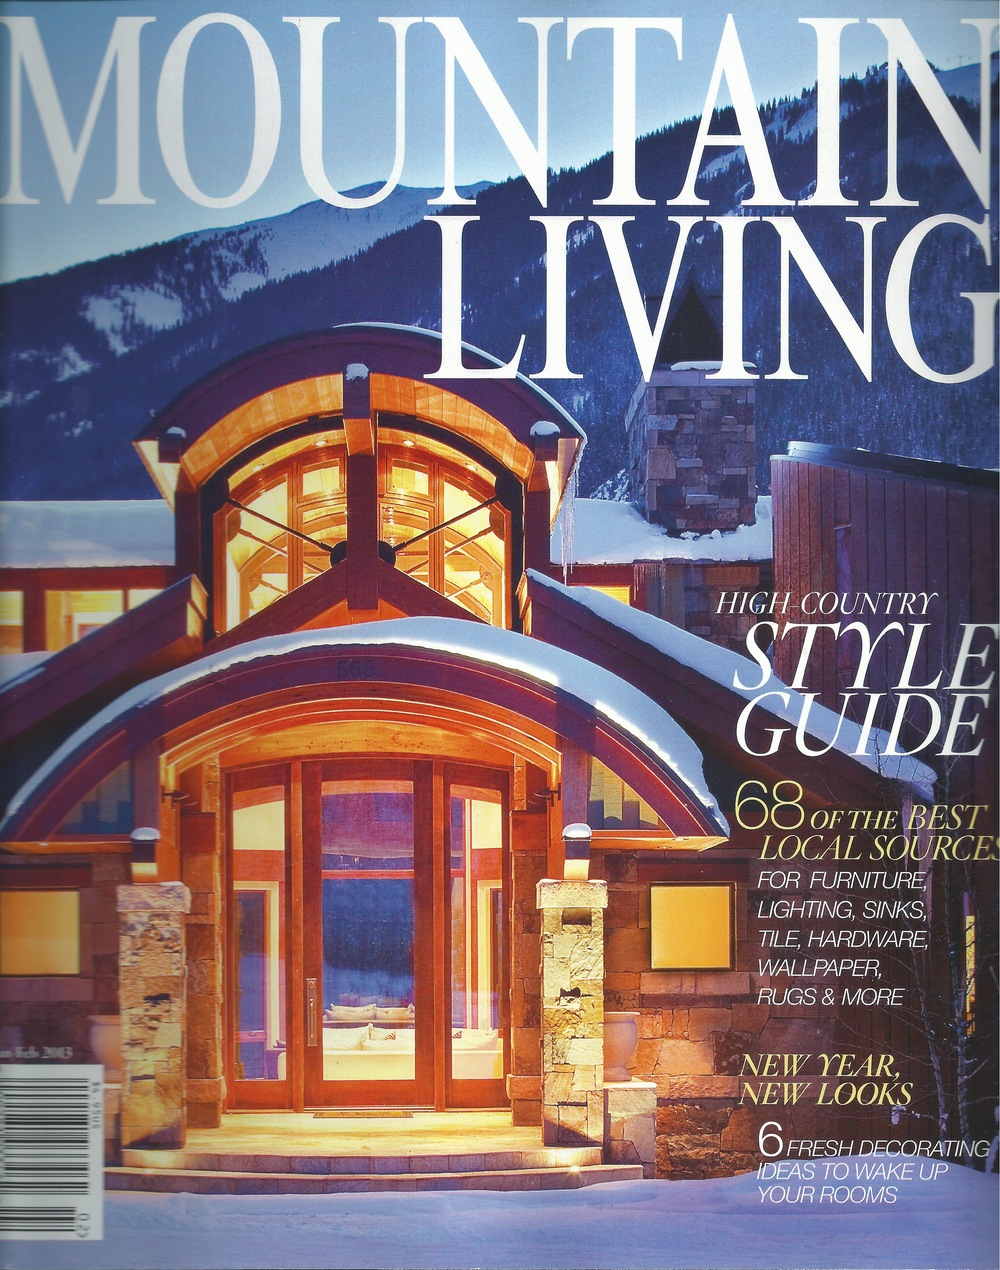 Mountain Living Jan-Feb 2013.jpg